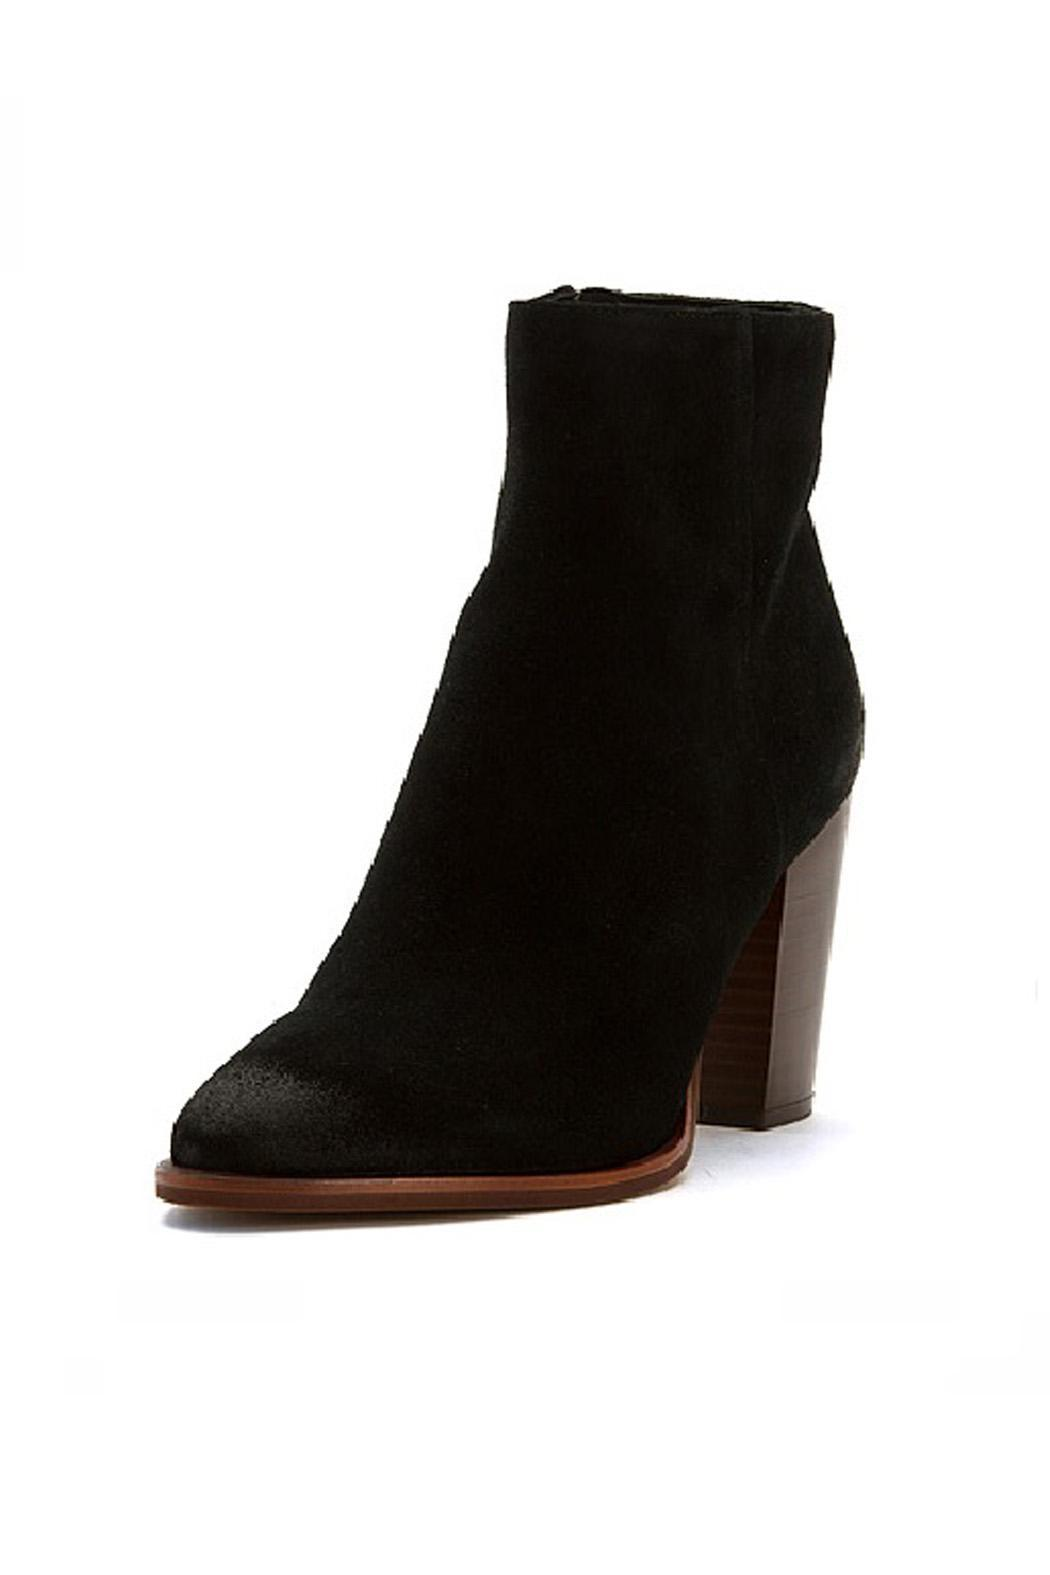 3d614e7614ff70 Sam Edelman Blake Ankle Bootie from South Carolina by Baehr Feet ...